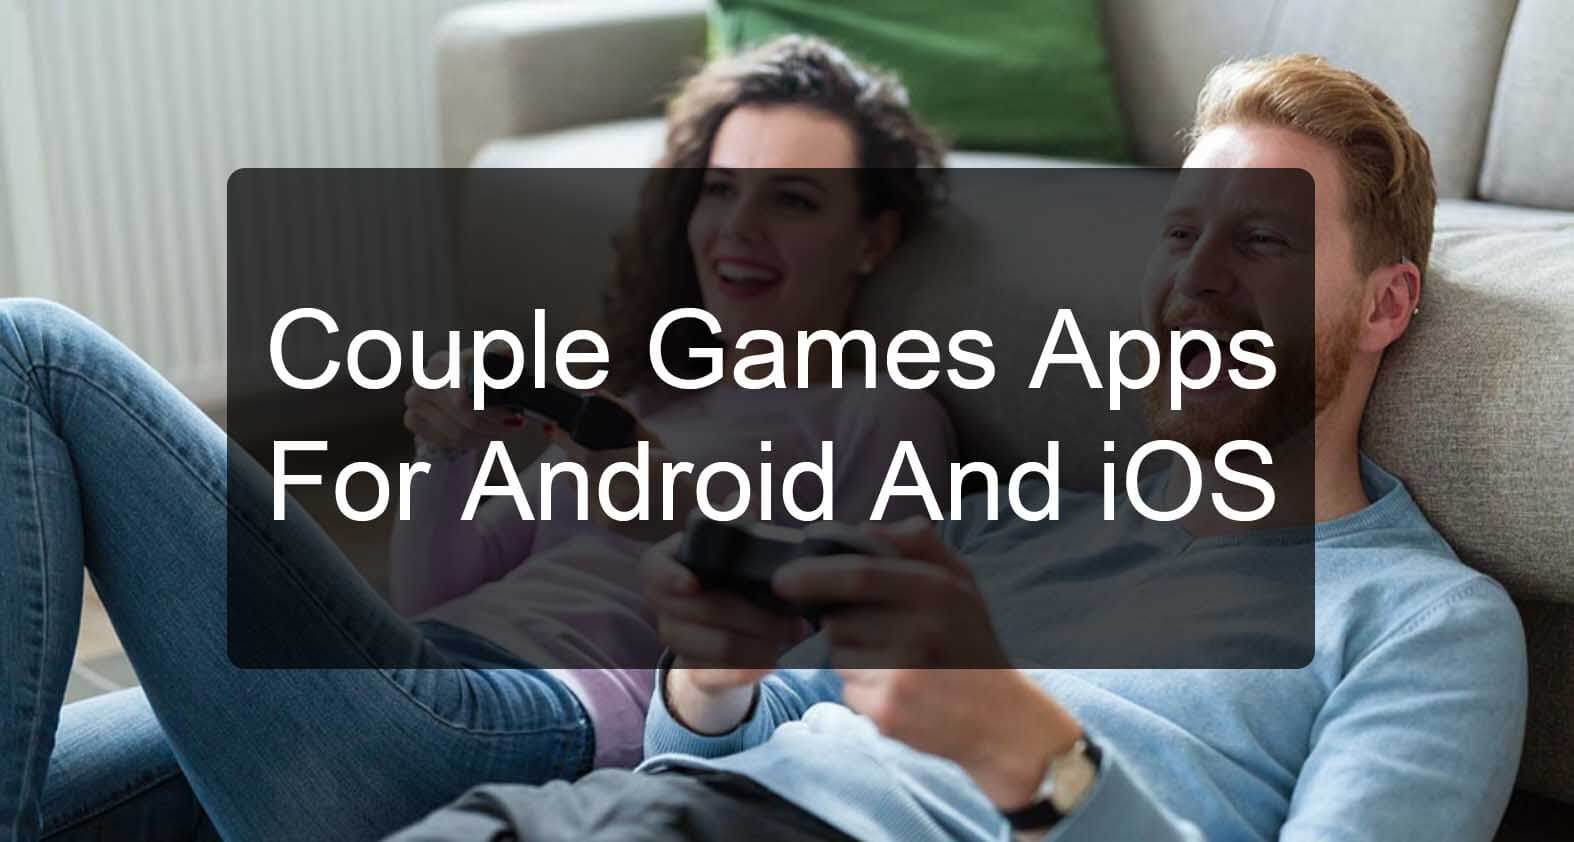 Couple Games Apps